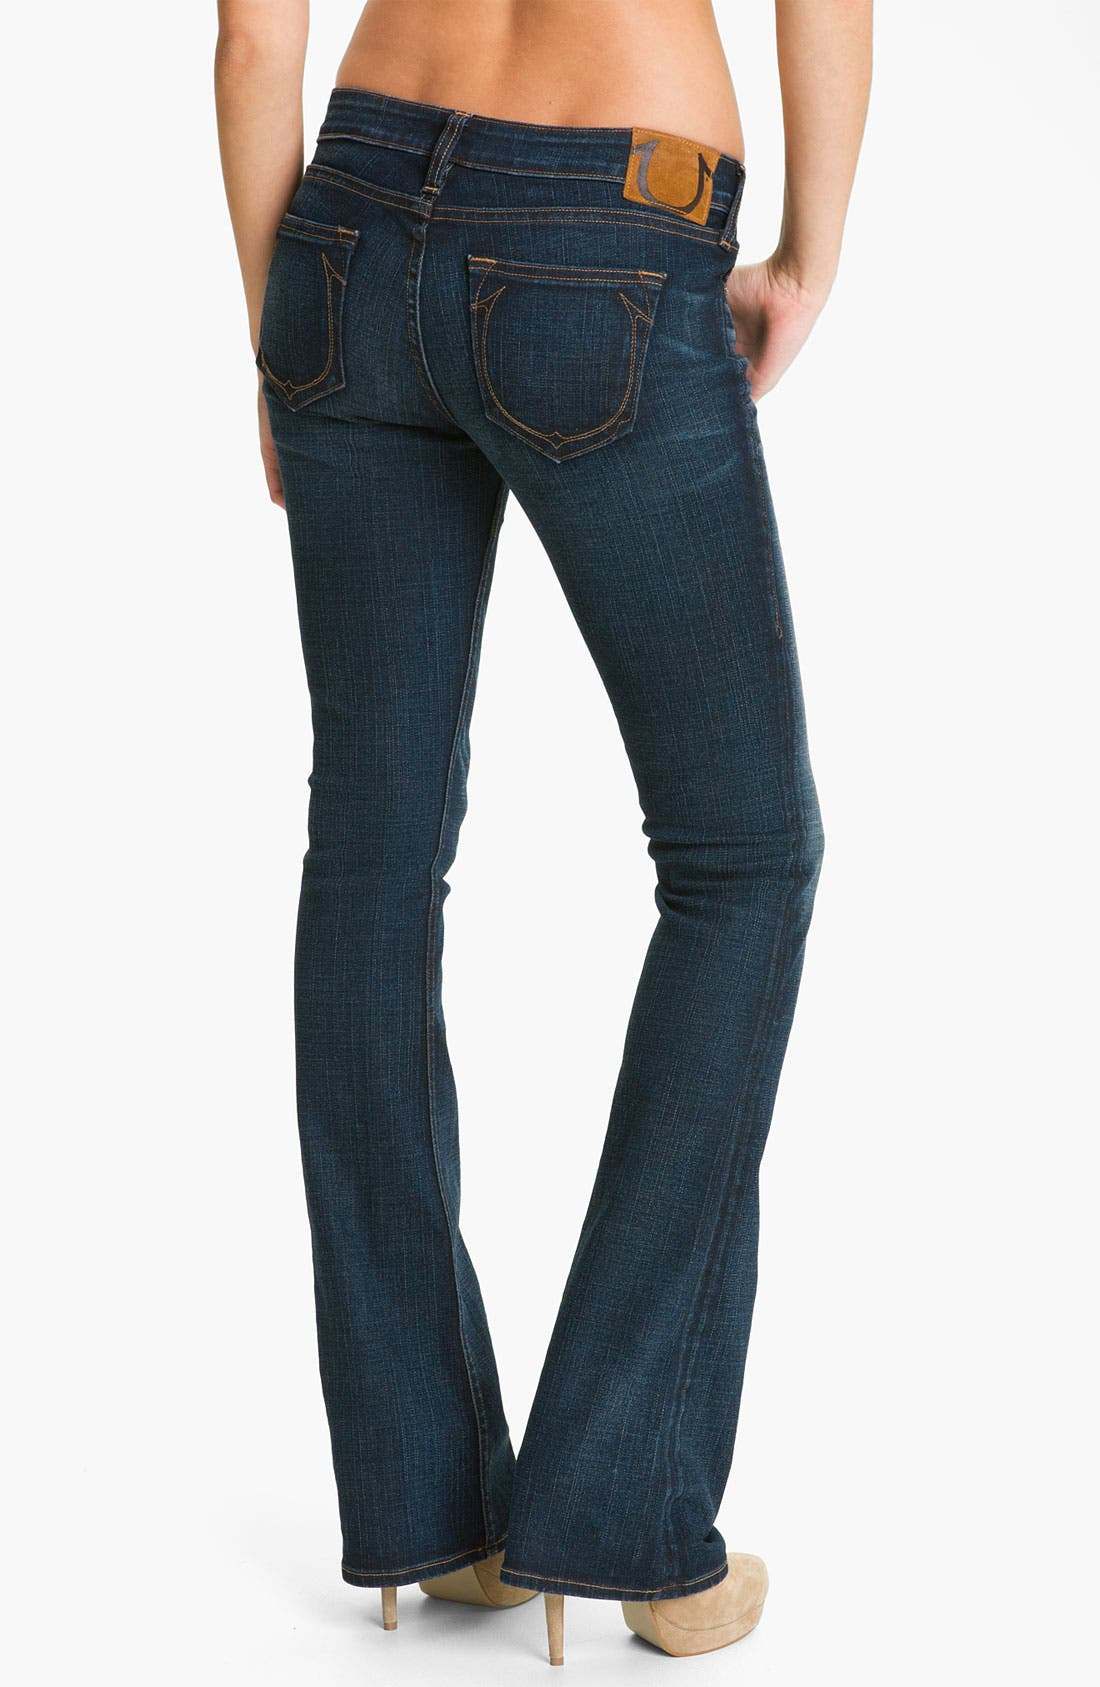 Alternate Image 2  - True Religion Brand Jeans 'Bobby' Boot Cut Jeans (Tim Luckdraw)